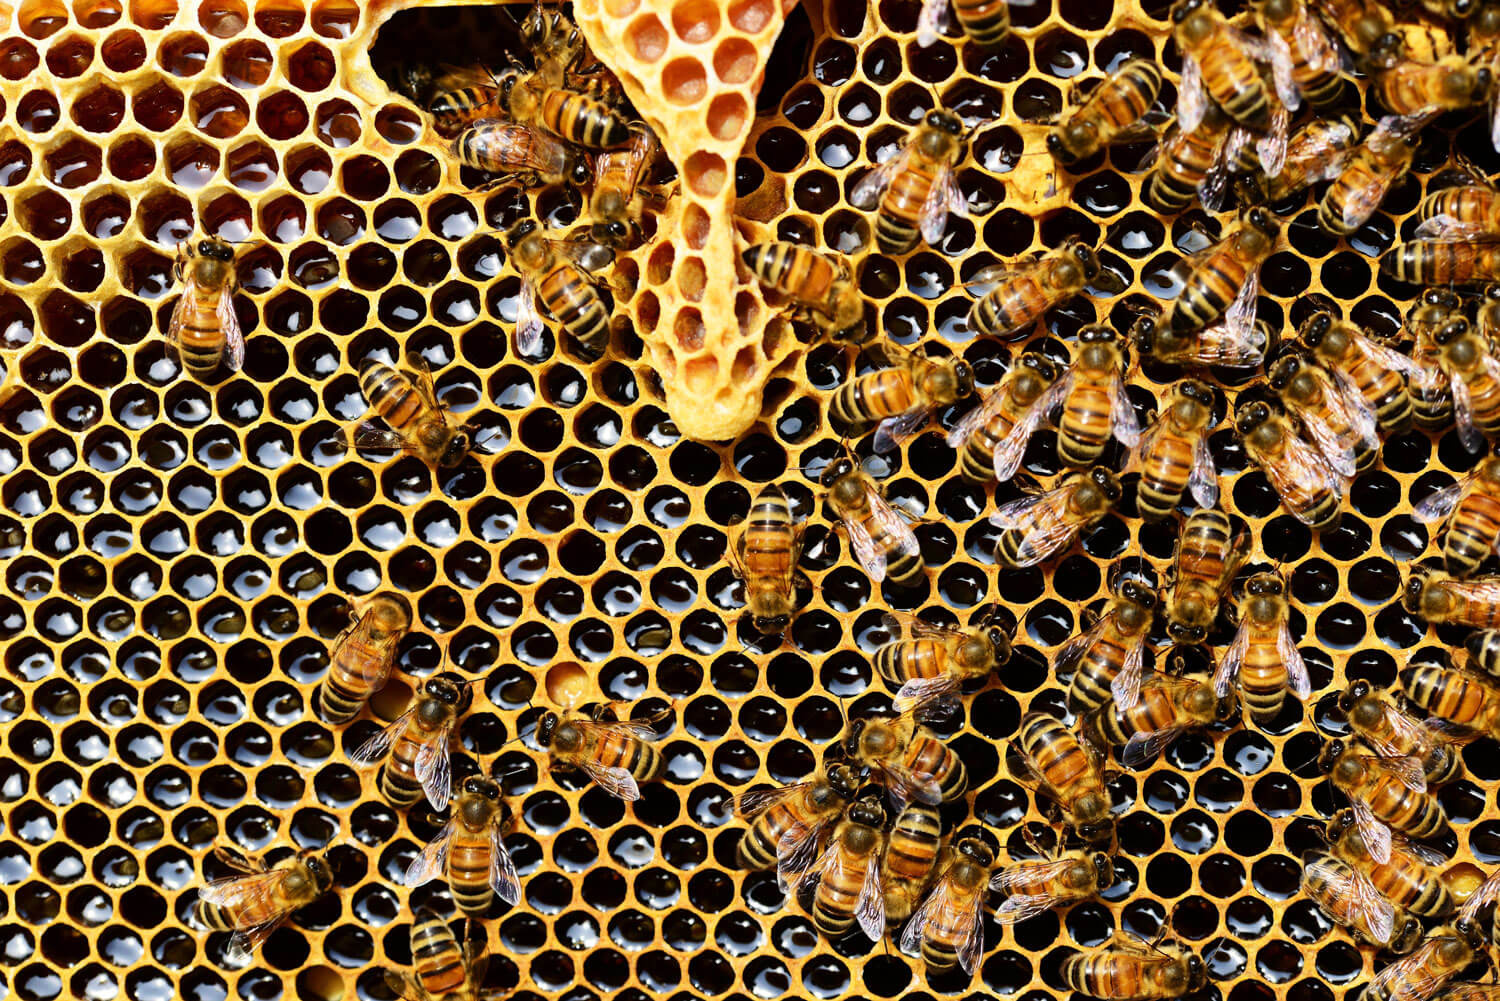 Product Failures: How Hive Mentality Could Sting You